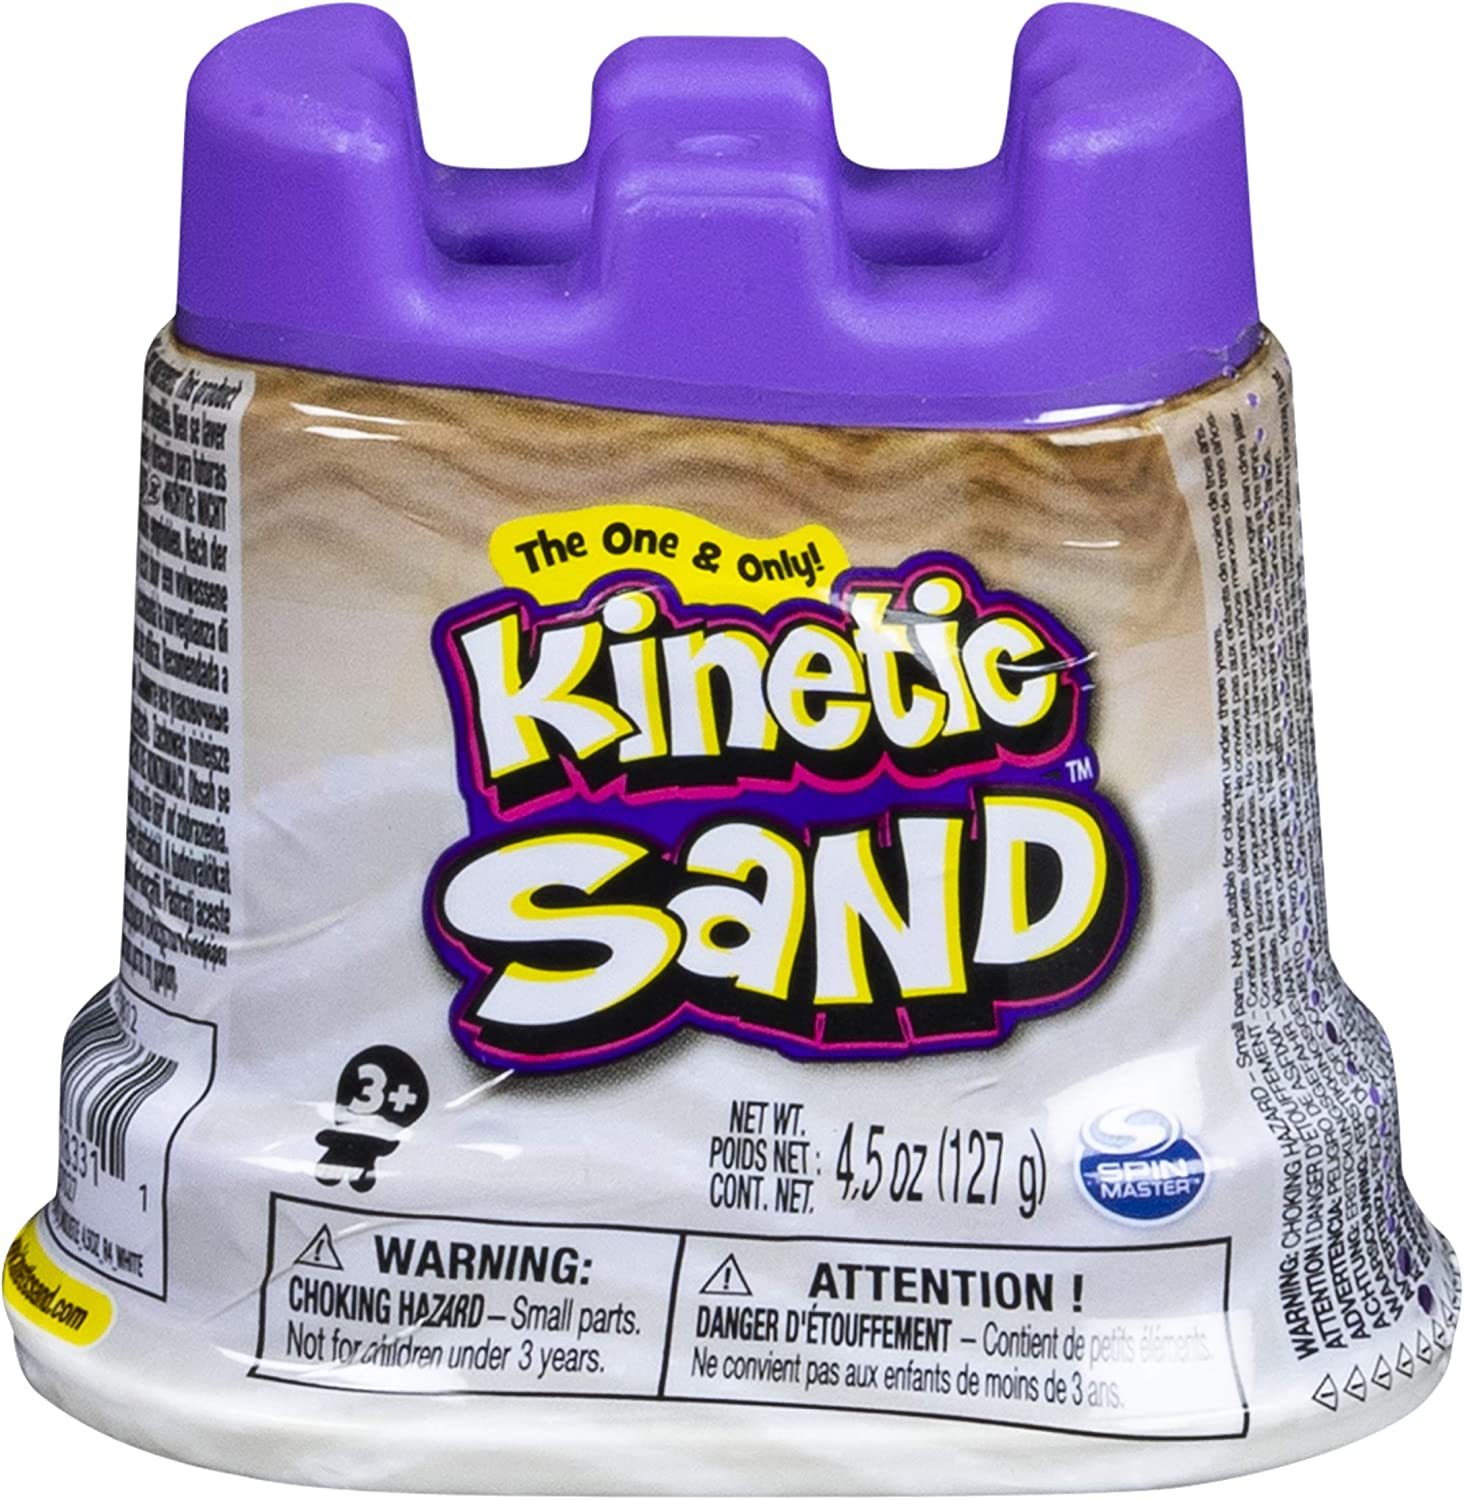 Kinetic Sand - Single Container - 4.5oz - White